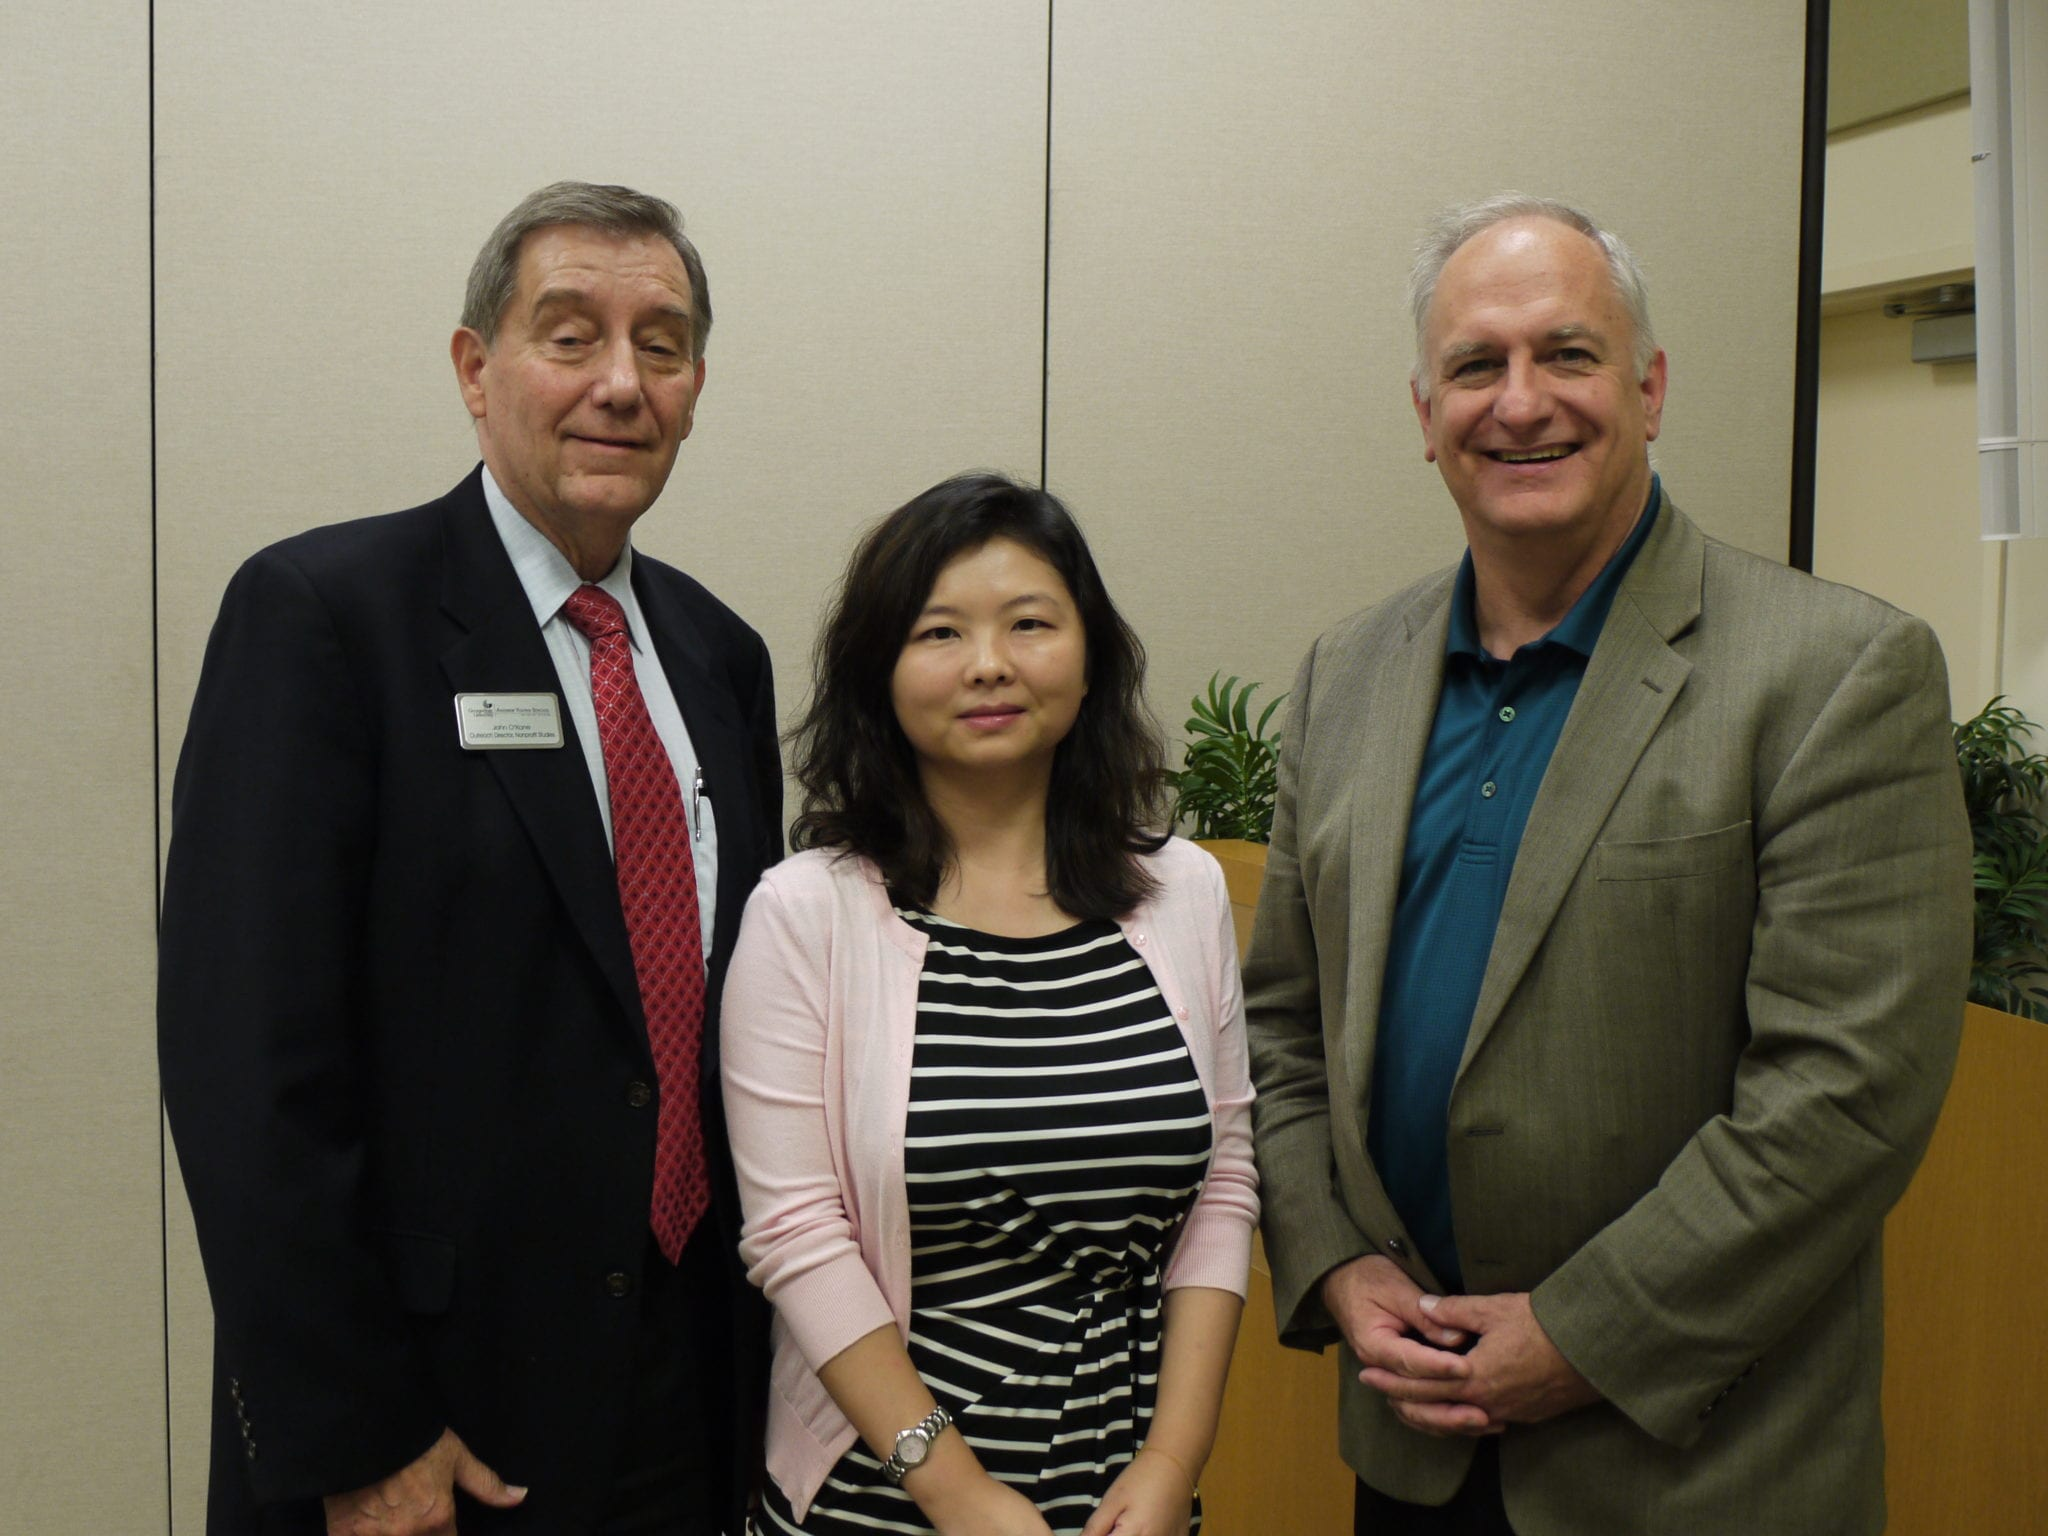 John O'Kane, Cathy Yang Liu and to John Tyler of the Ewing Marion Kauffman Foundation